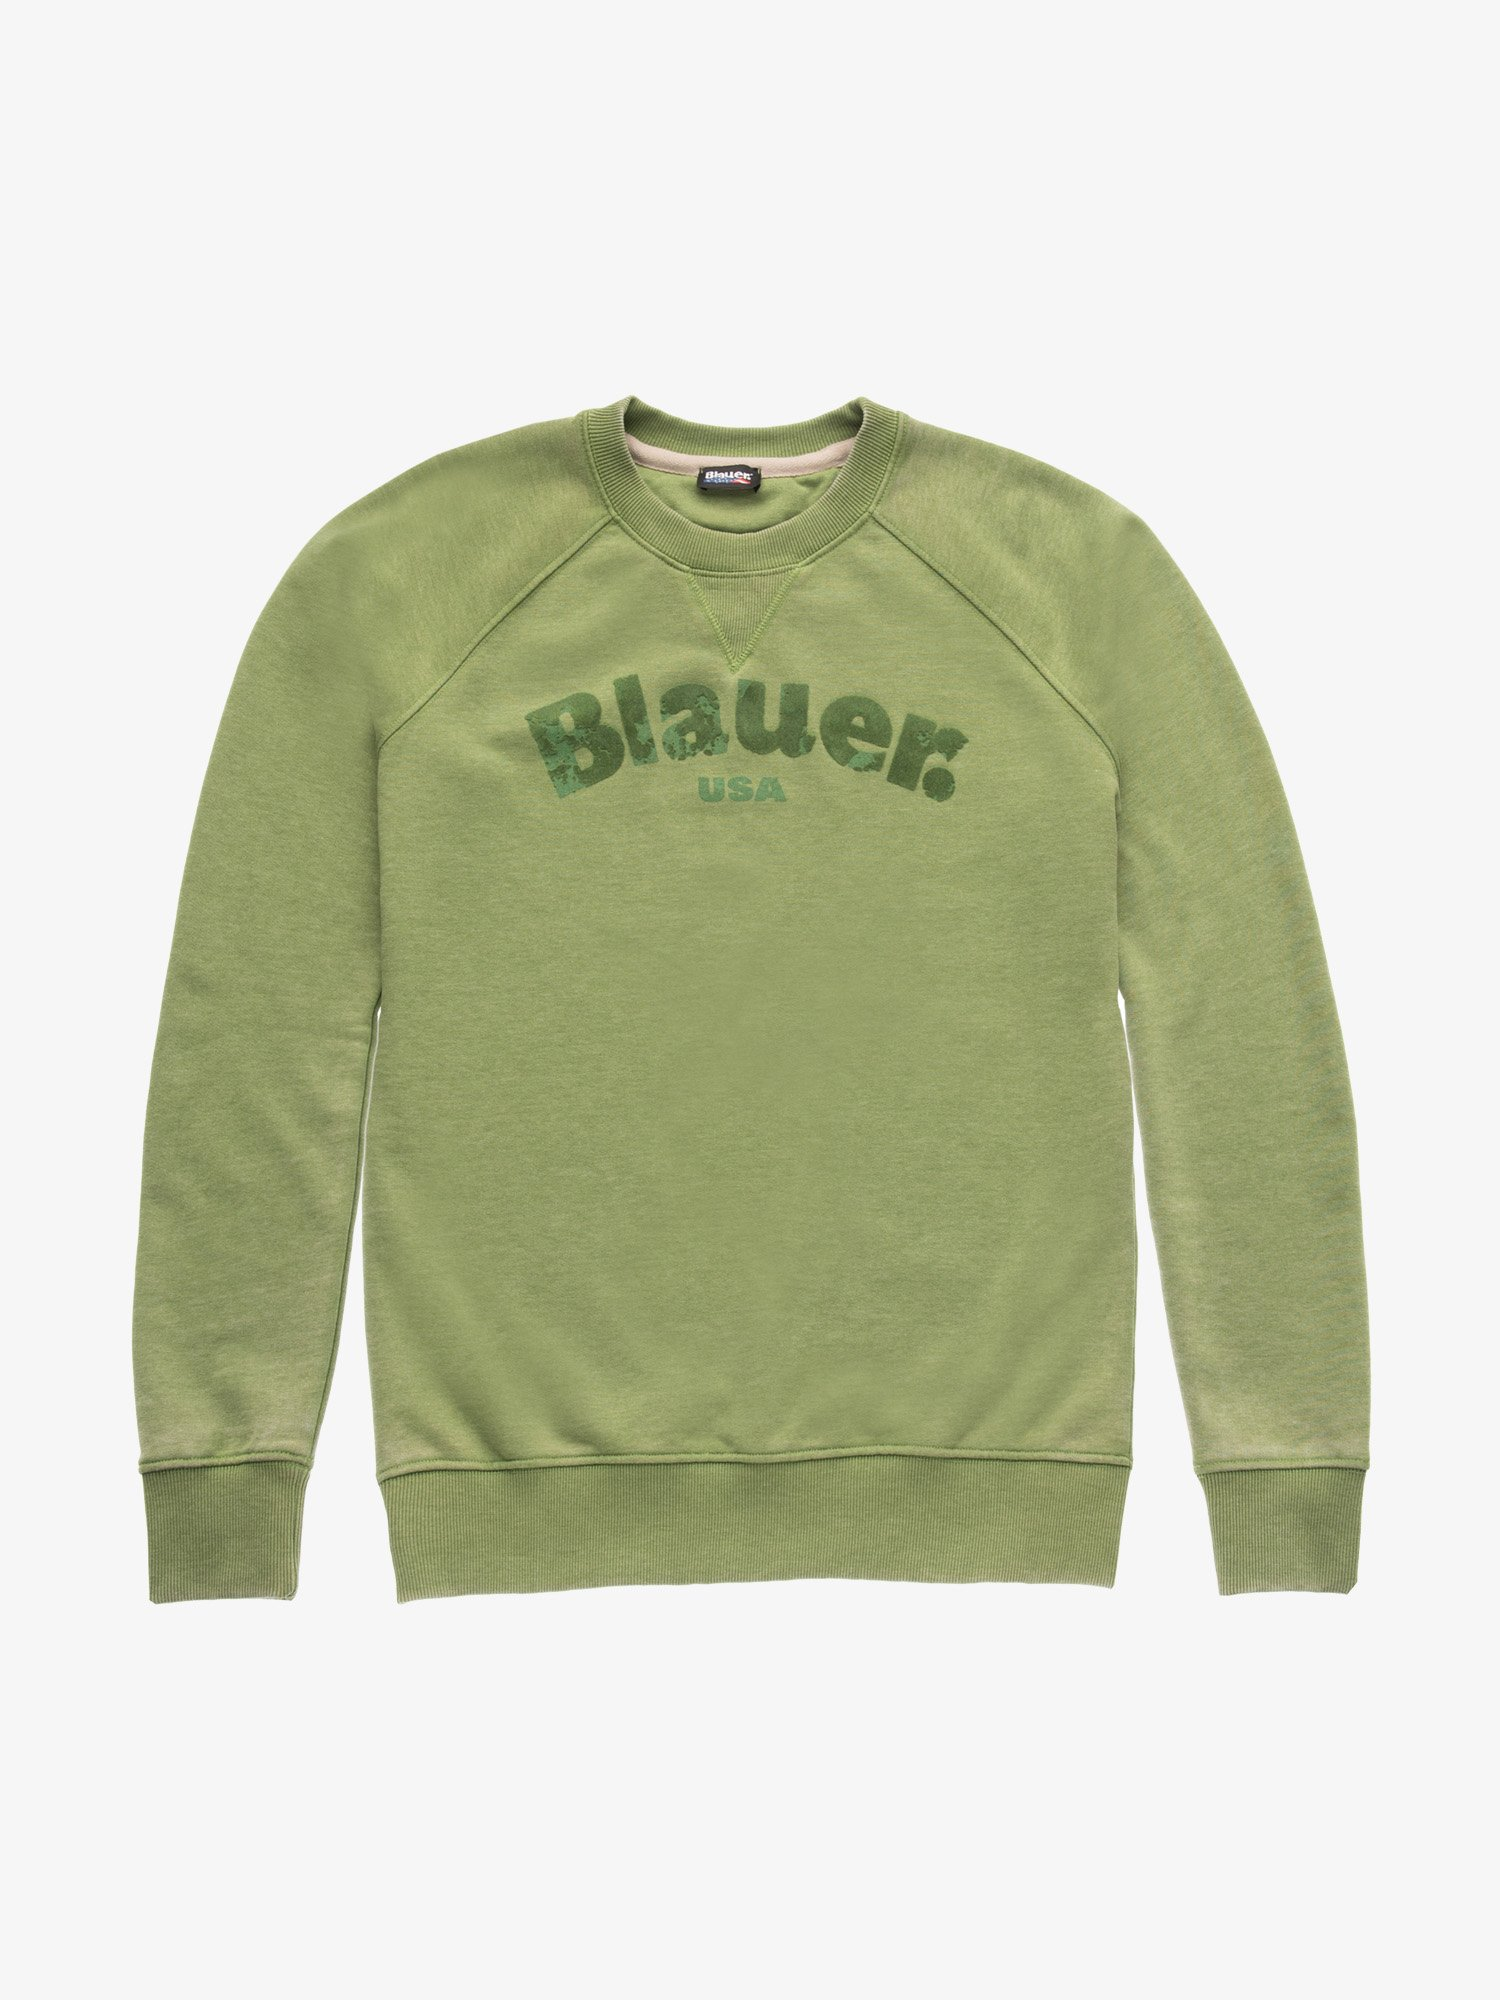 Blauer - BURNOUT CREW NECK SWEATSHIRT - Green Pea - Blauer